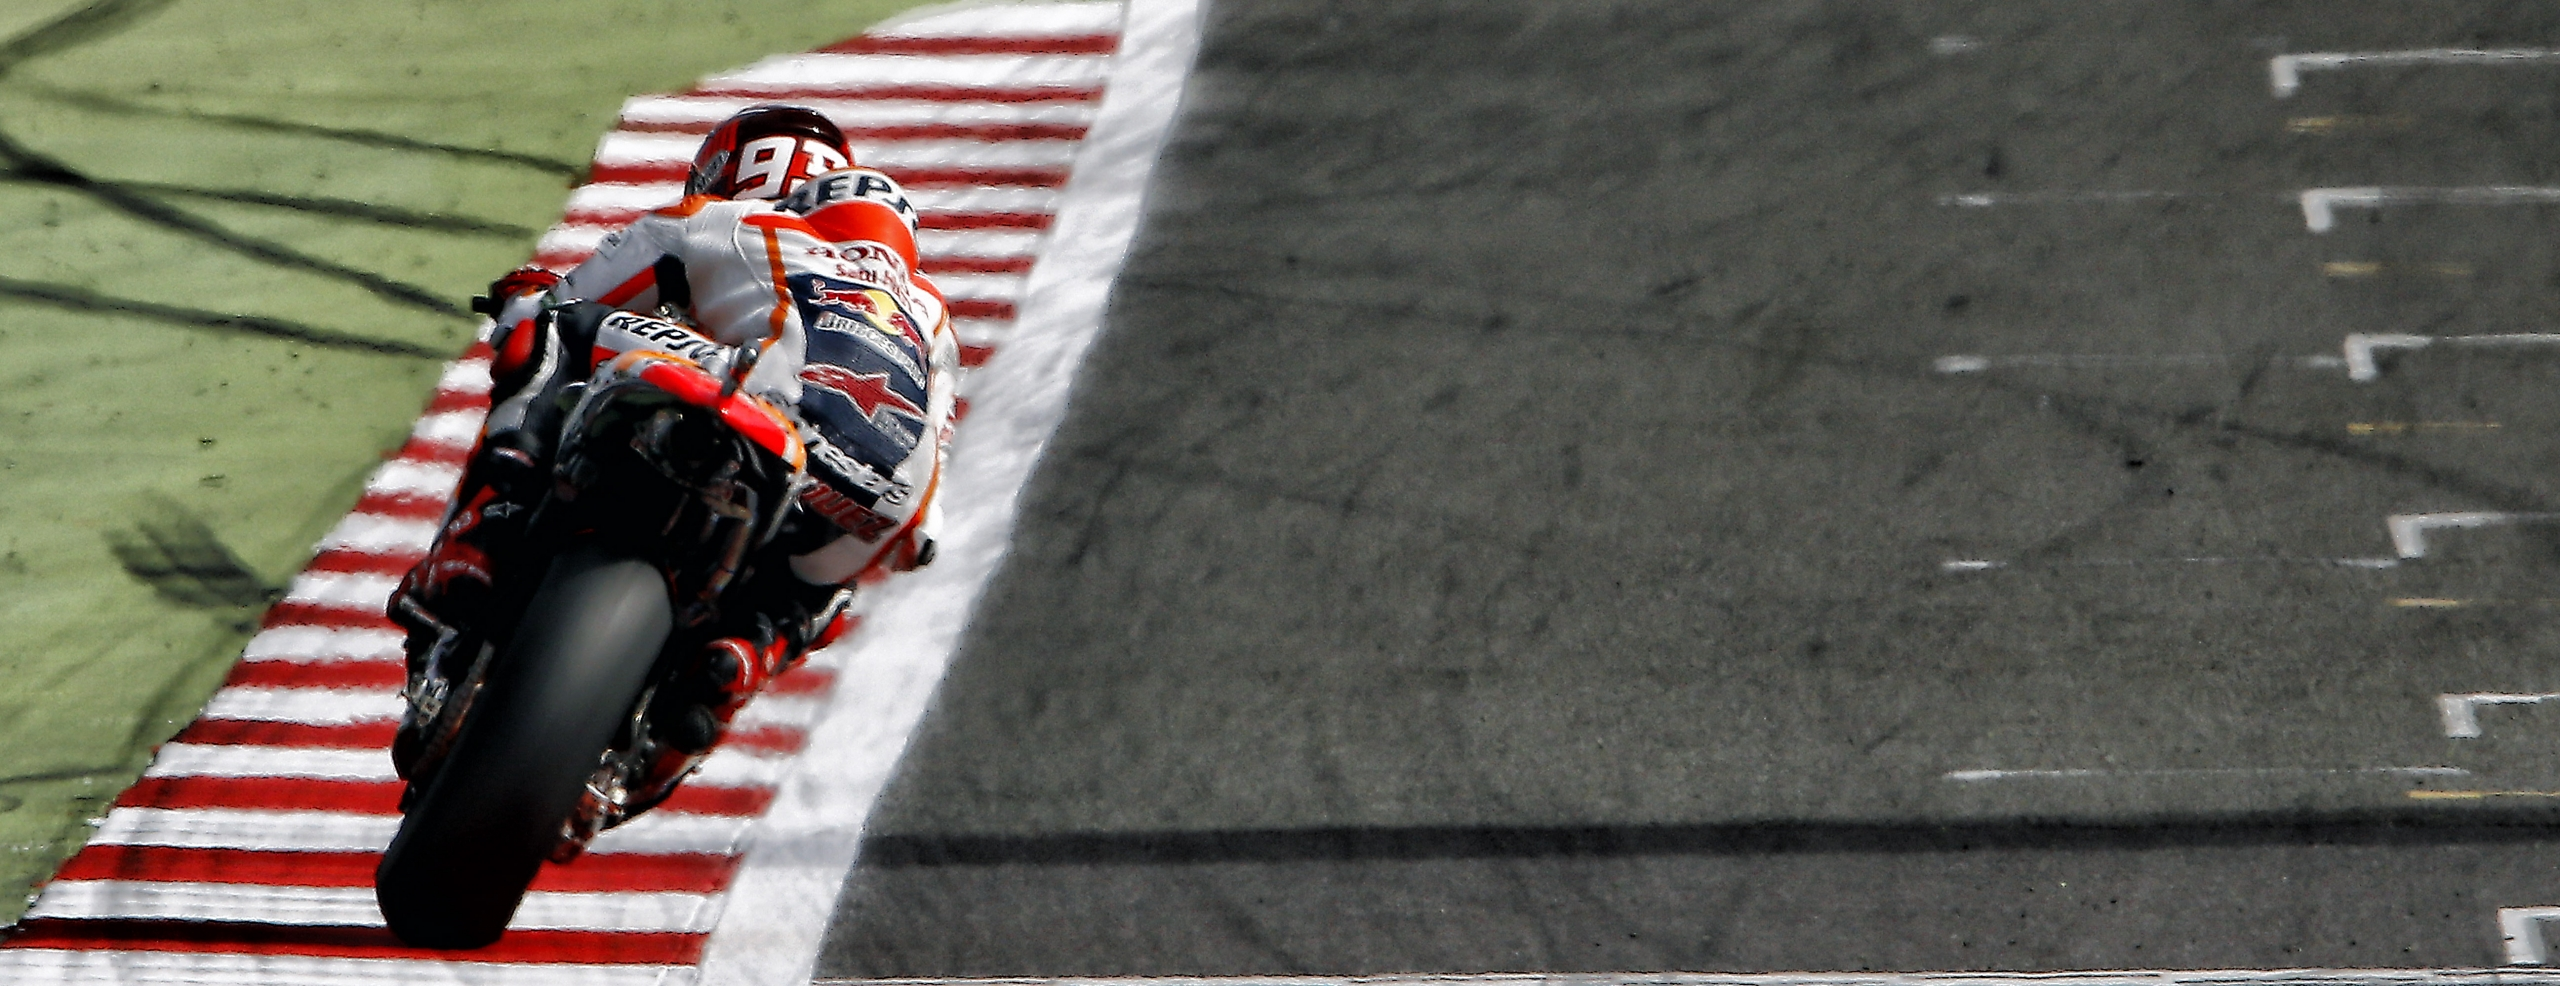 Repsol Honda Team head to Britain to begin another back-to-back stint